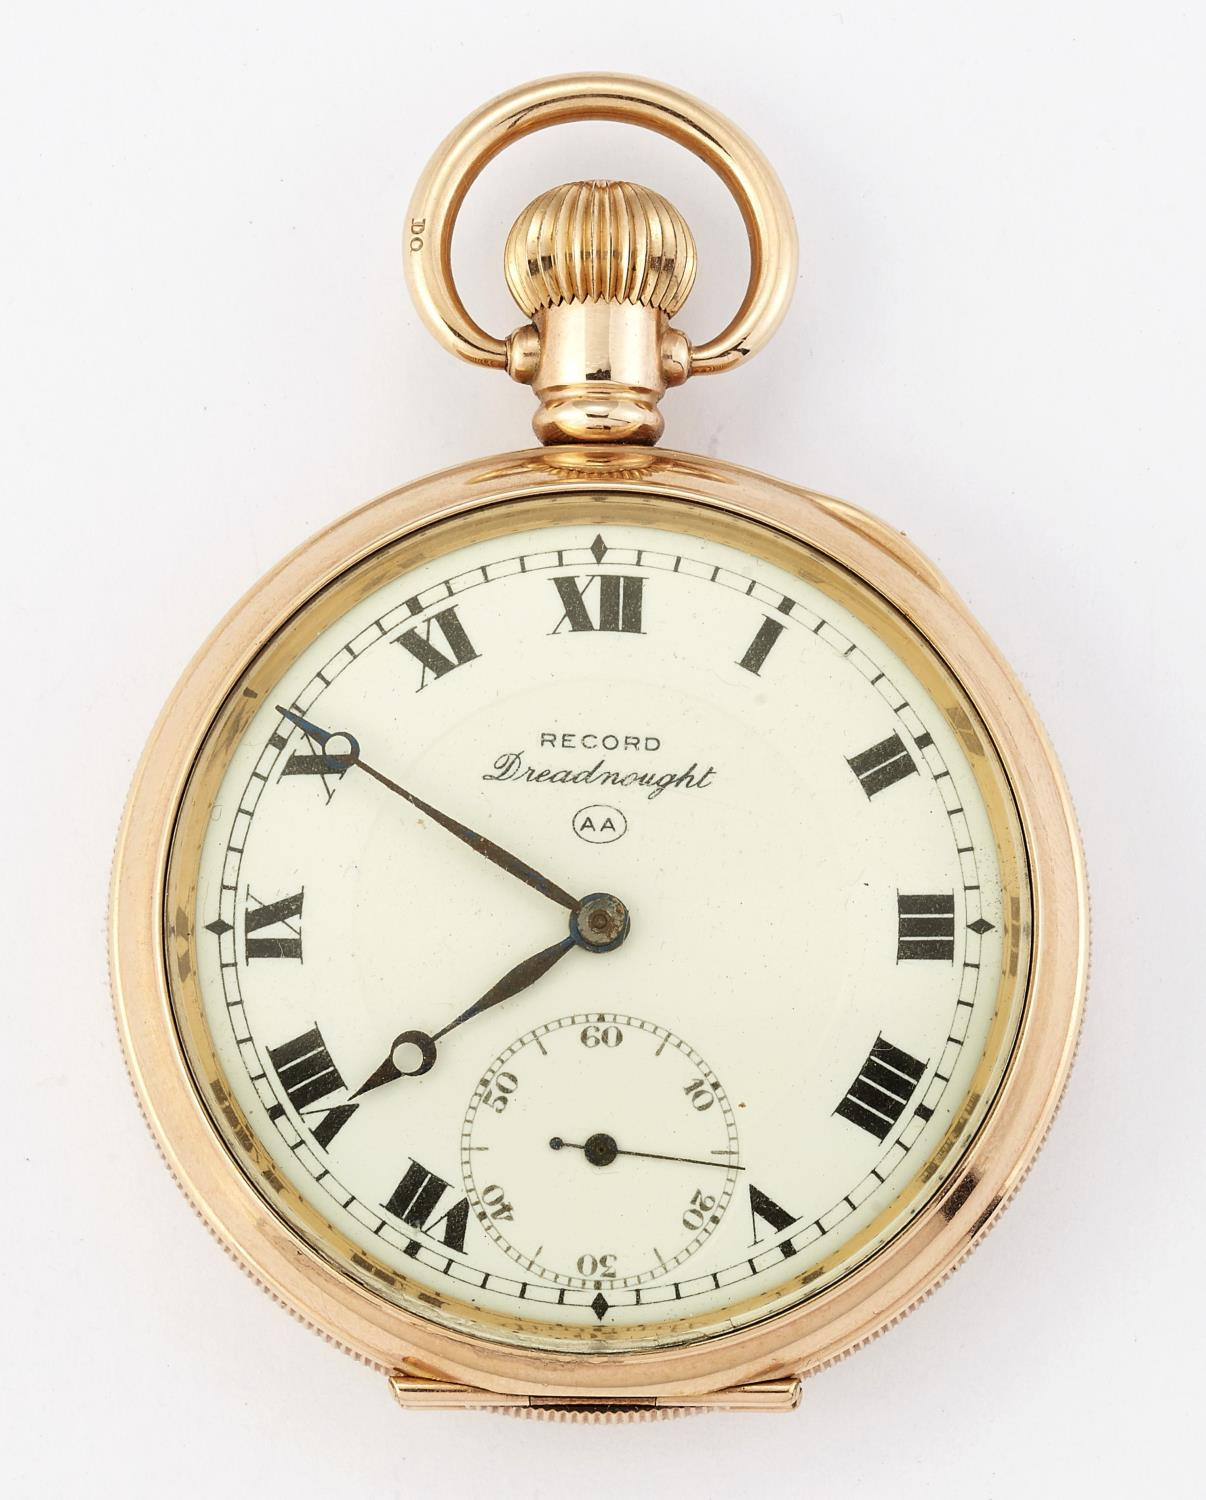 A RECORD DREADNOUGHT POCKET WATCH - Image 2 of 2